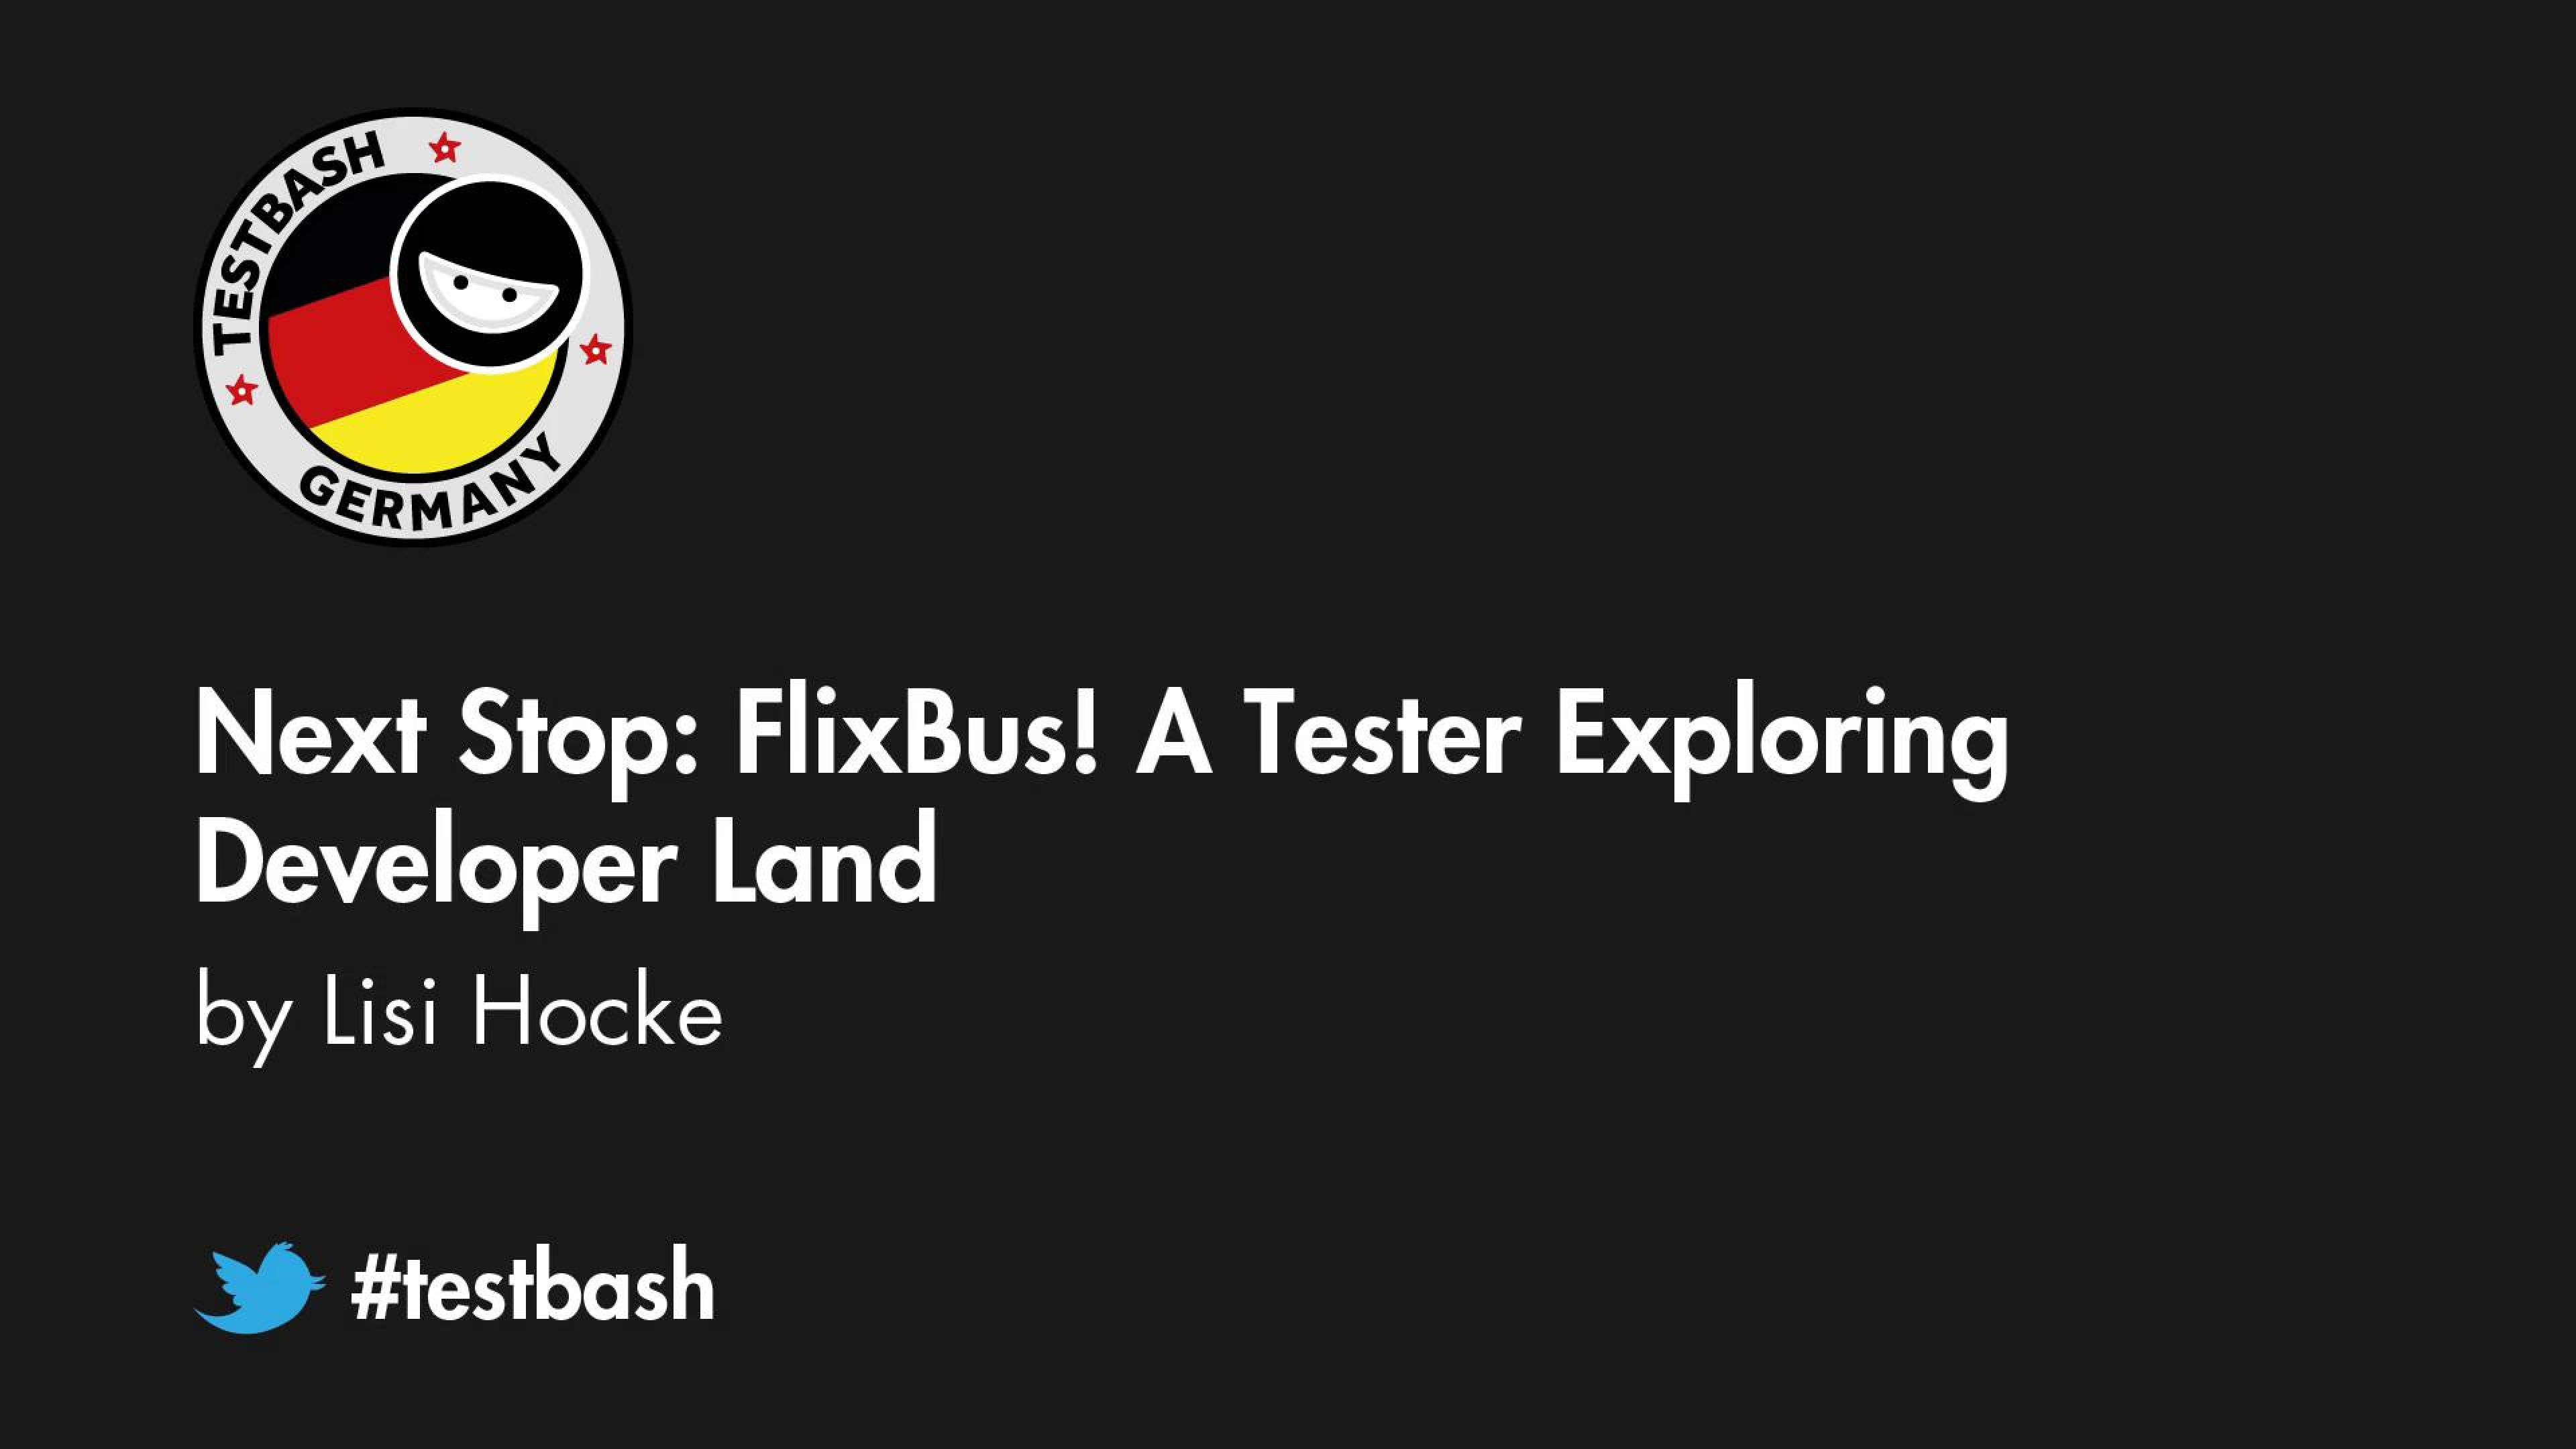 Next Stop: FlixBus! A Tester Exploring Developer Land - Lisi Hocke